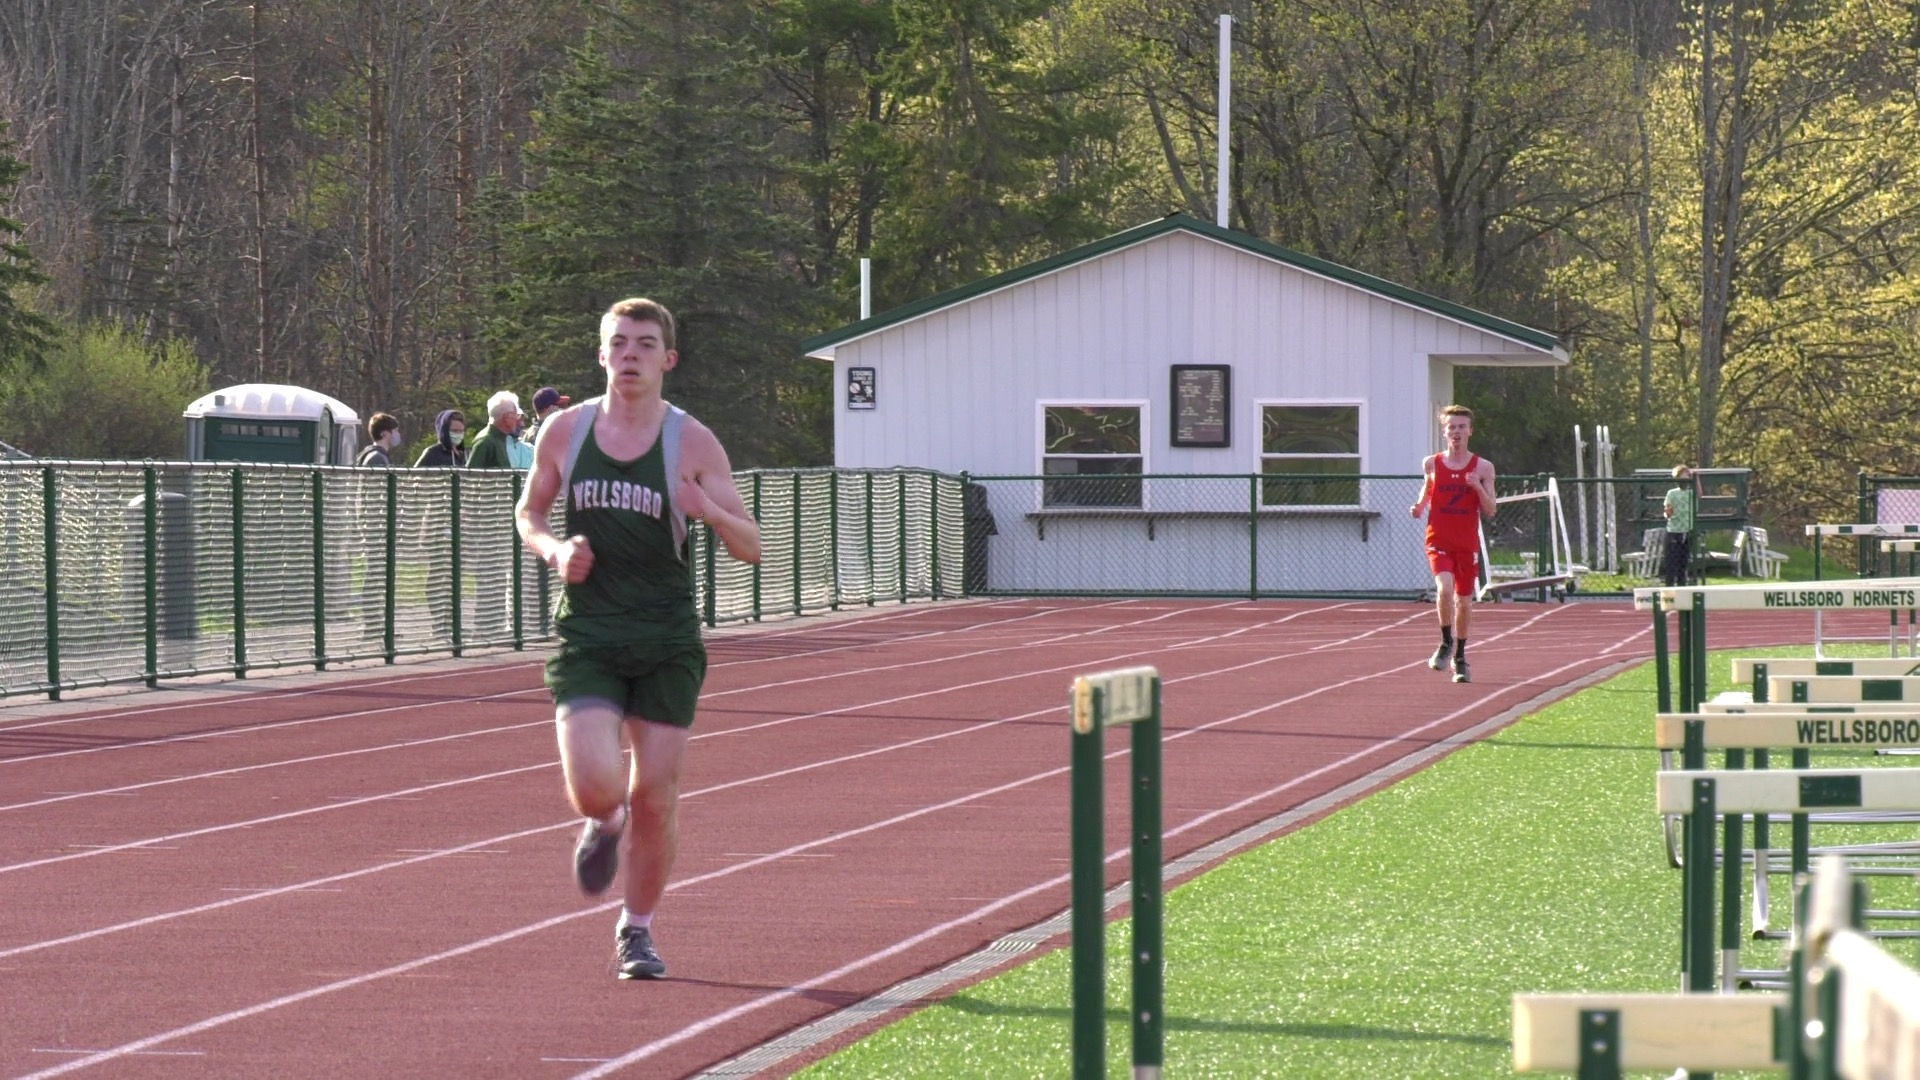 Wellsboro Track teams sweep Sayre